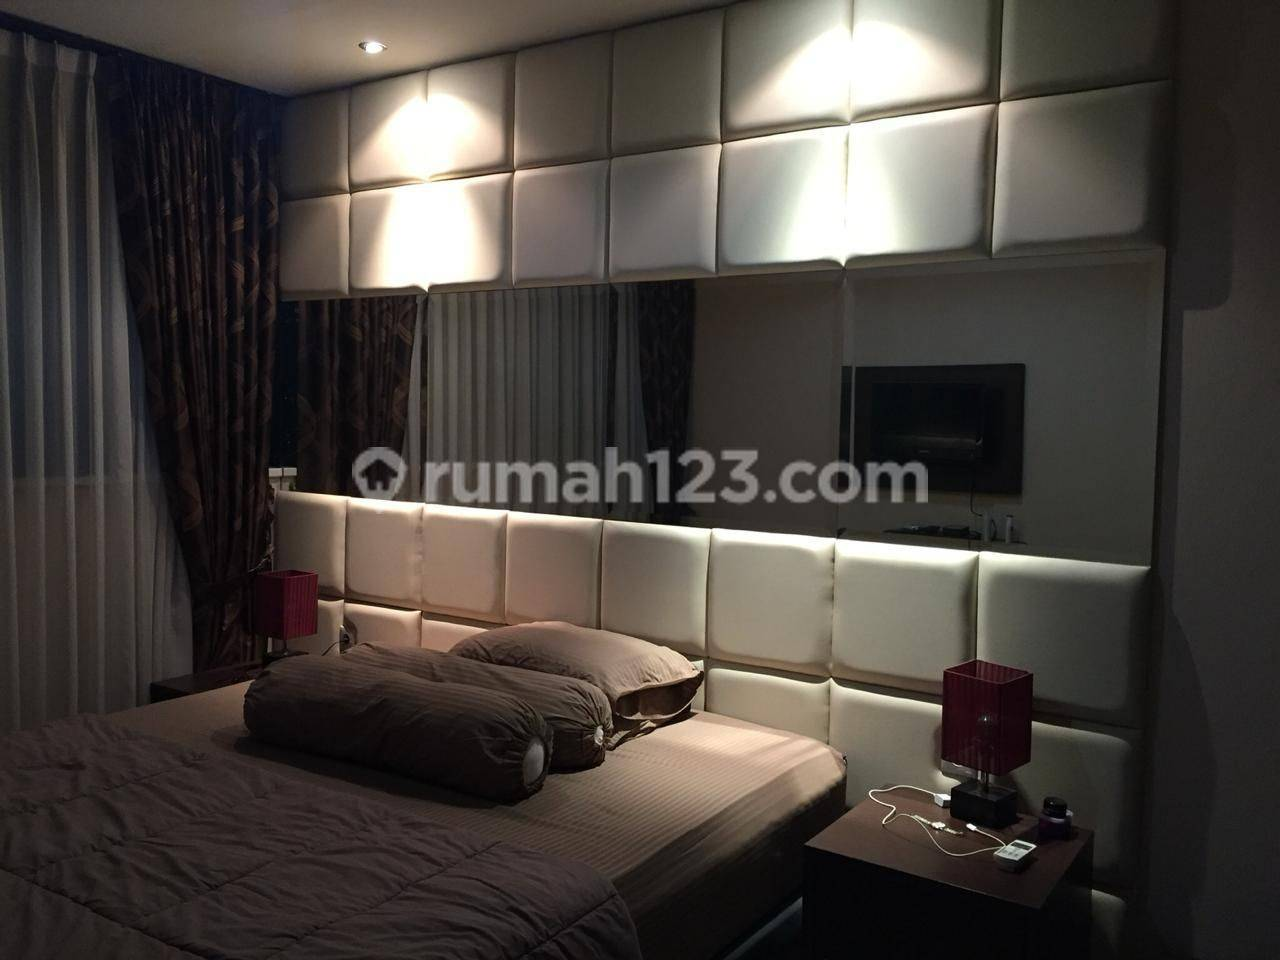 APT THE LAVANDE FLOOR 26 TYPE 2BR FURNISHED CHEAP AND GOOD UNIT